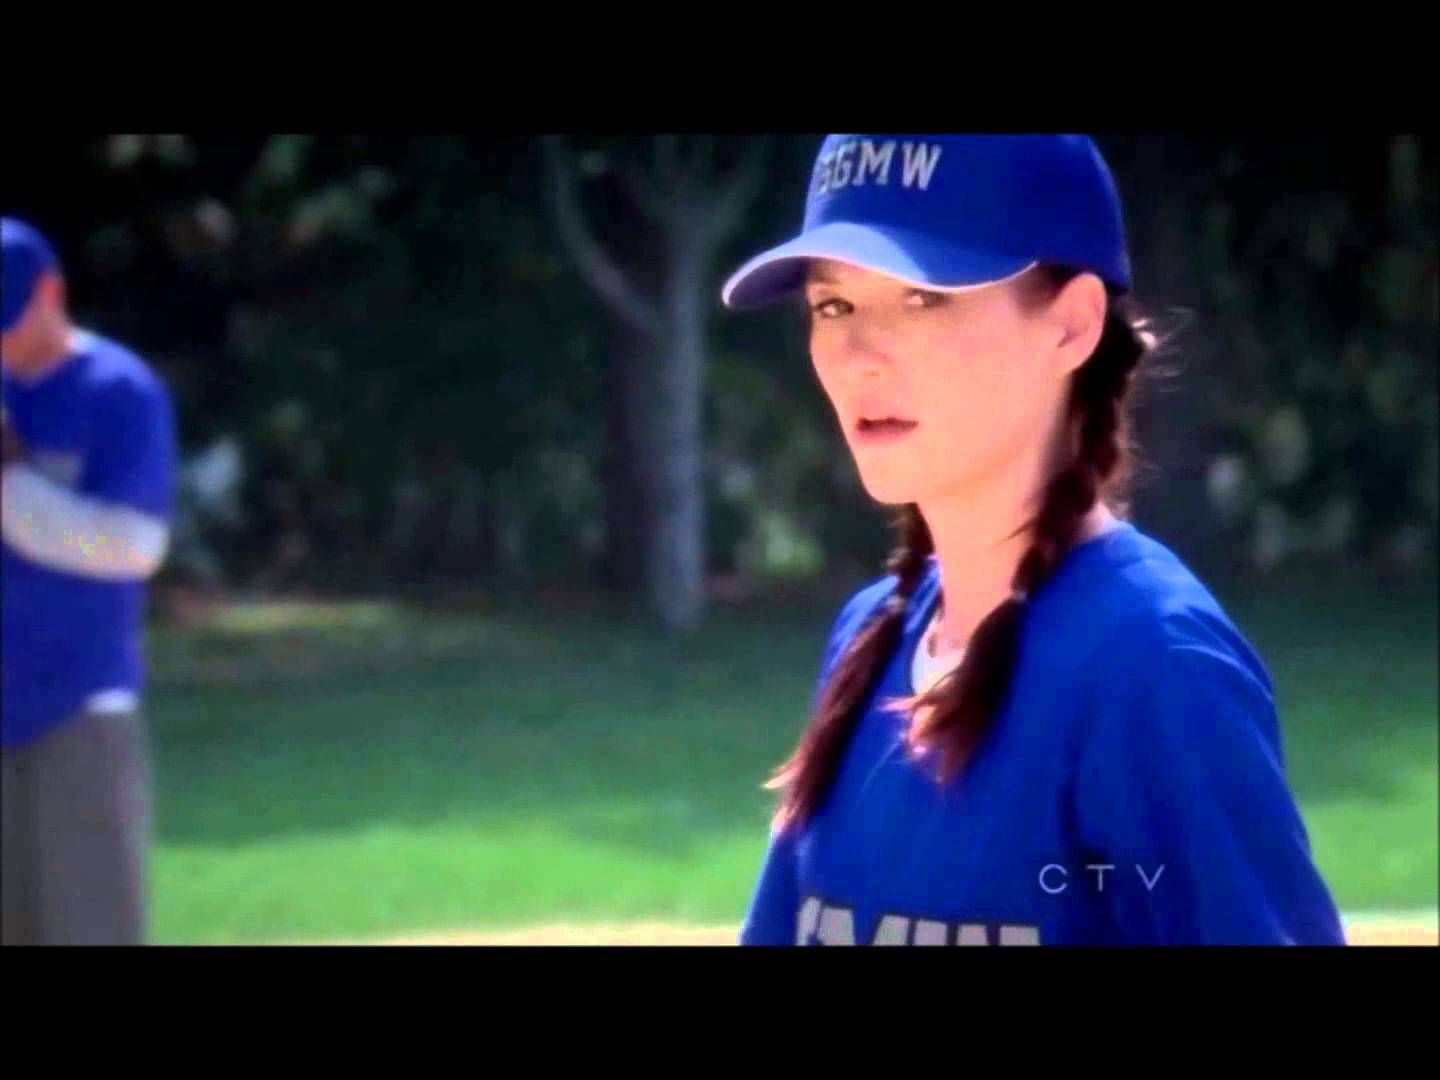 Grey\'s Anatomy S08 E07 Lexie hits Marks GF with Ball | greys ...